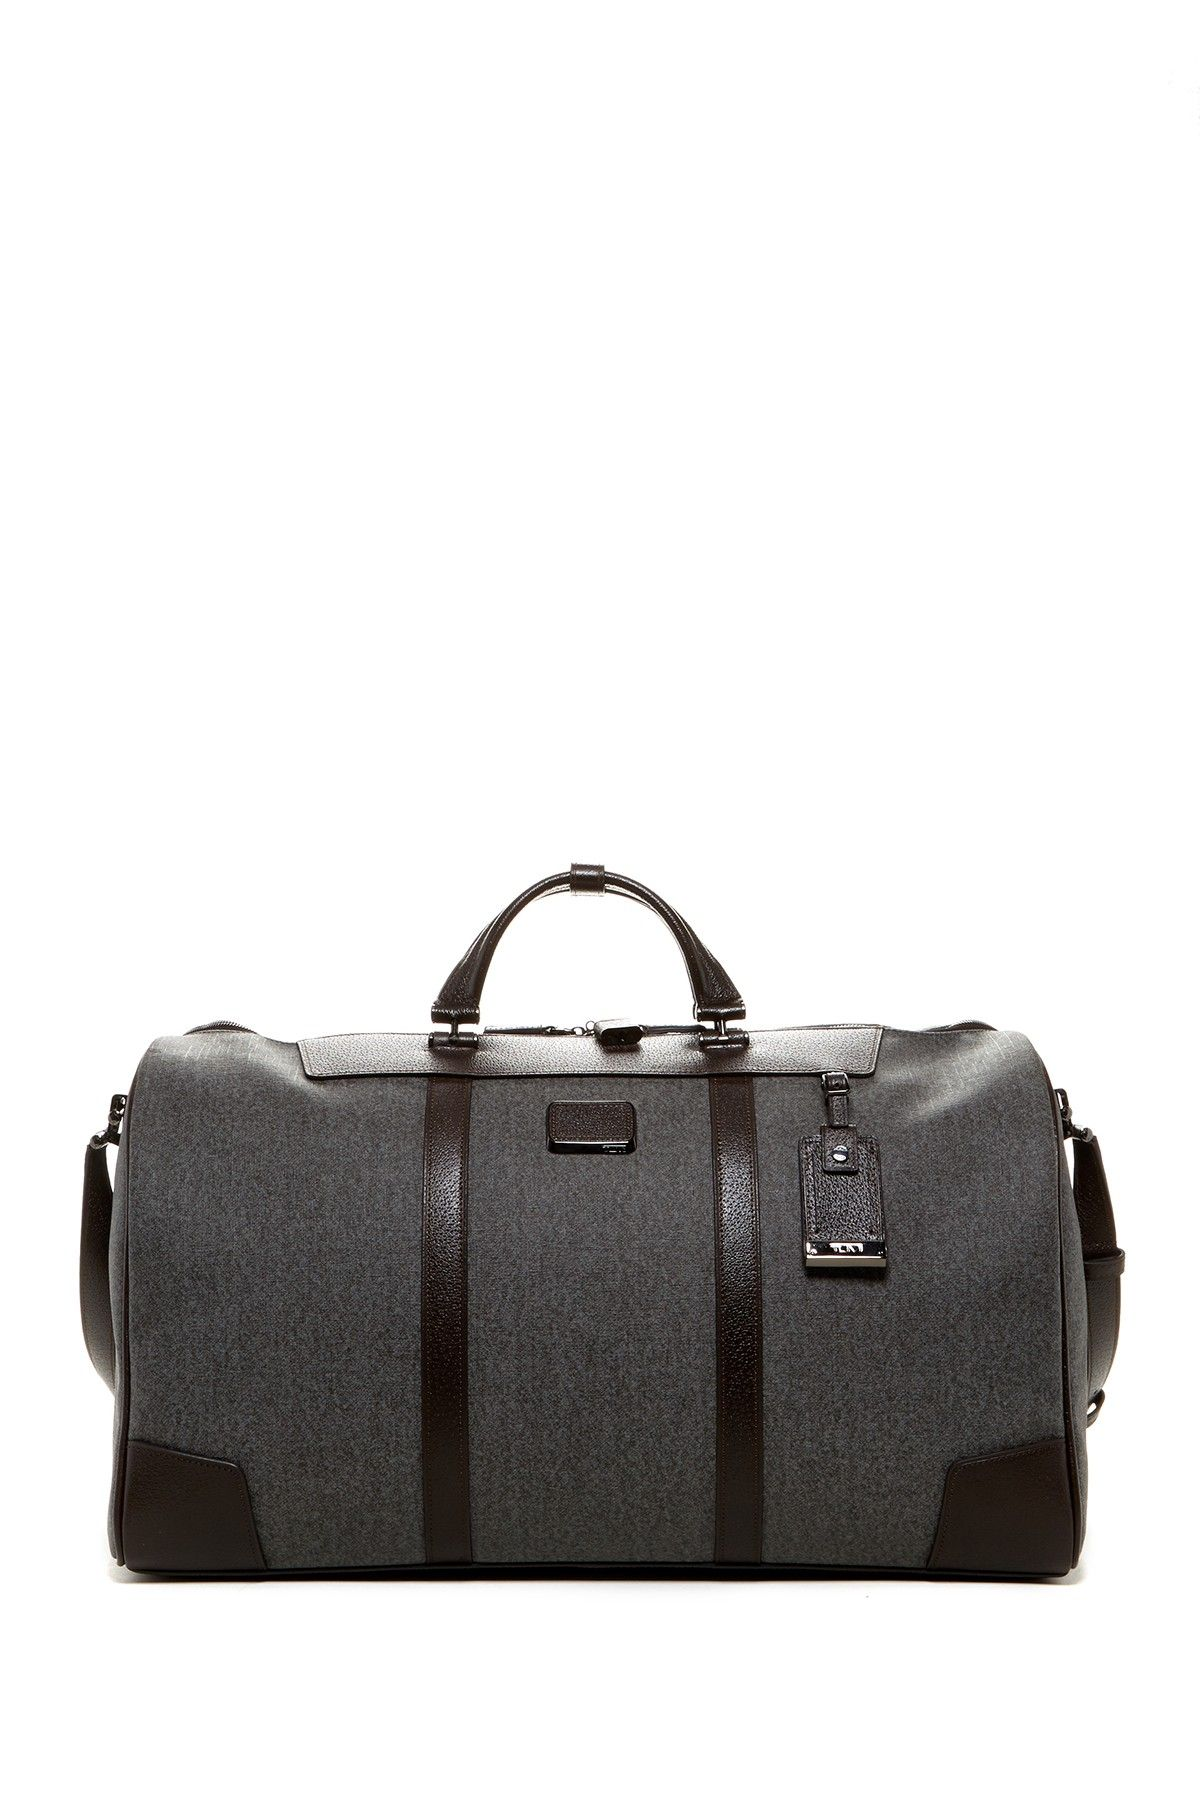 b3f5ace21 The Perfect Weekender! | Travel & Leisure | Bags, Luxury bags, Tumi ...